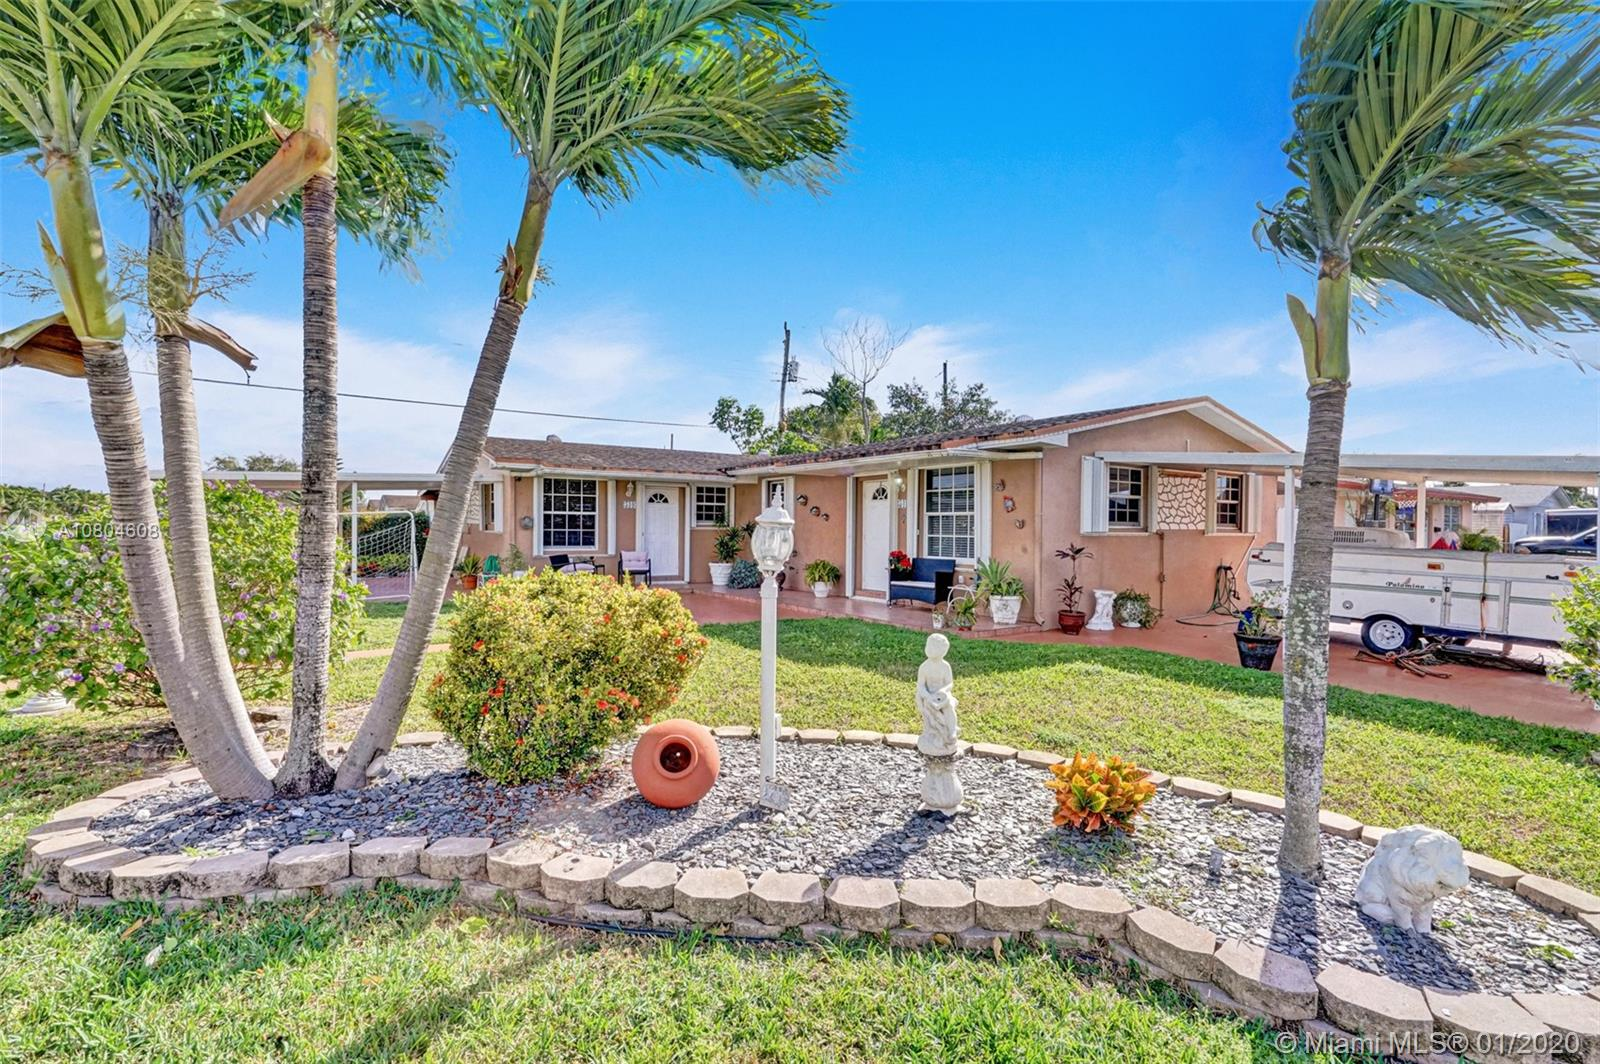 539 SW 114th Ave, Sweetwater, FL 33174